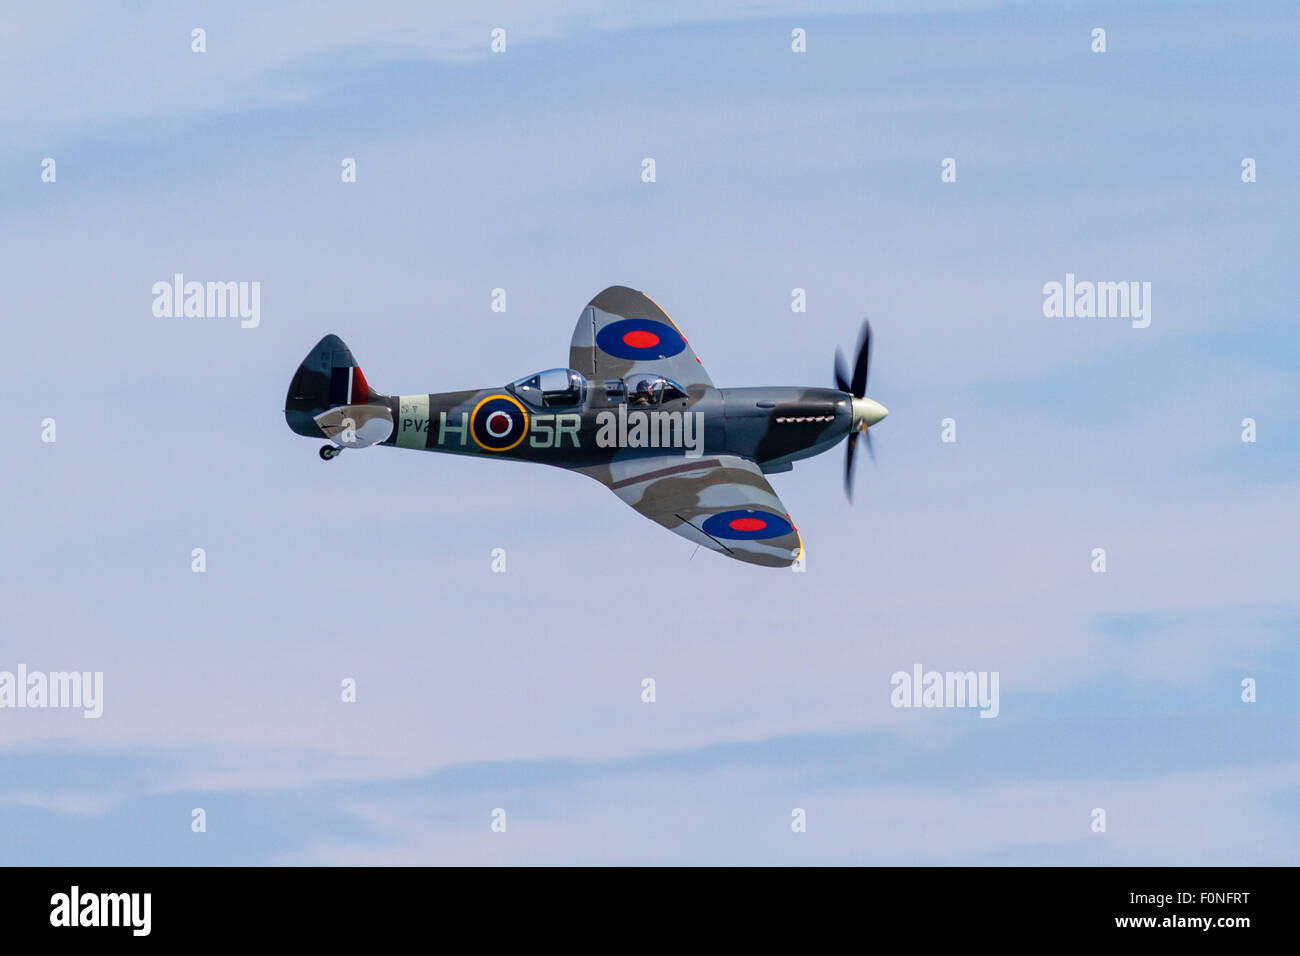 Spitfire flying over East Sussex at the Eastbourne Air Show, 14th August 2015, England, UK - Stock Image